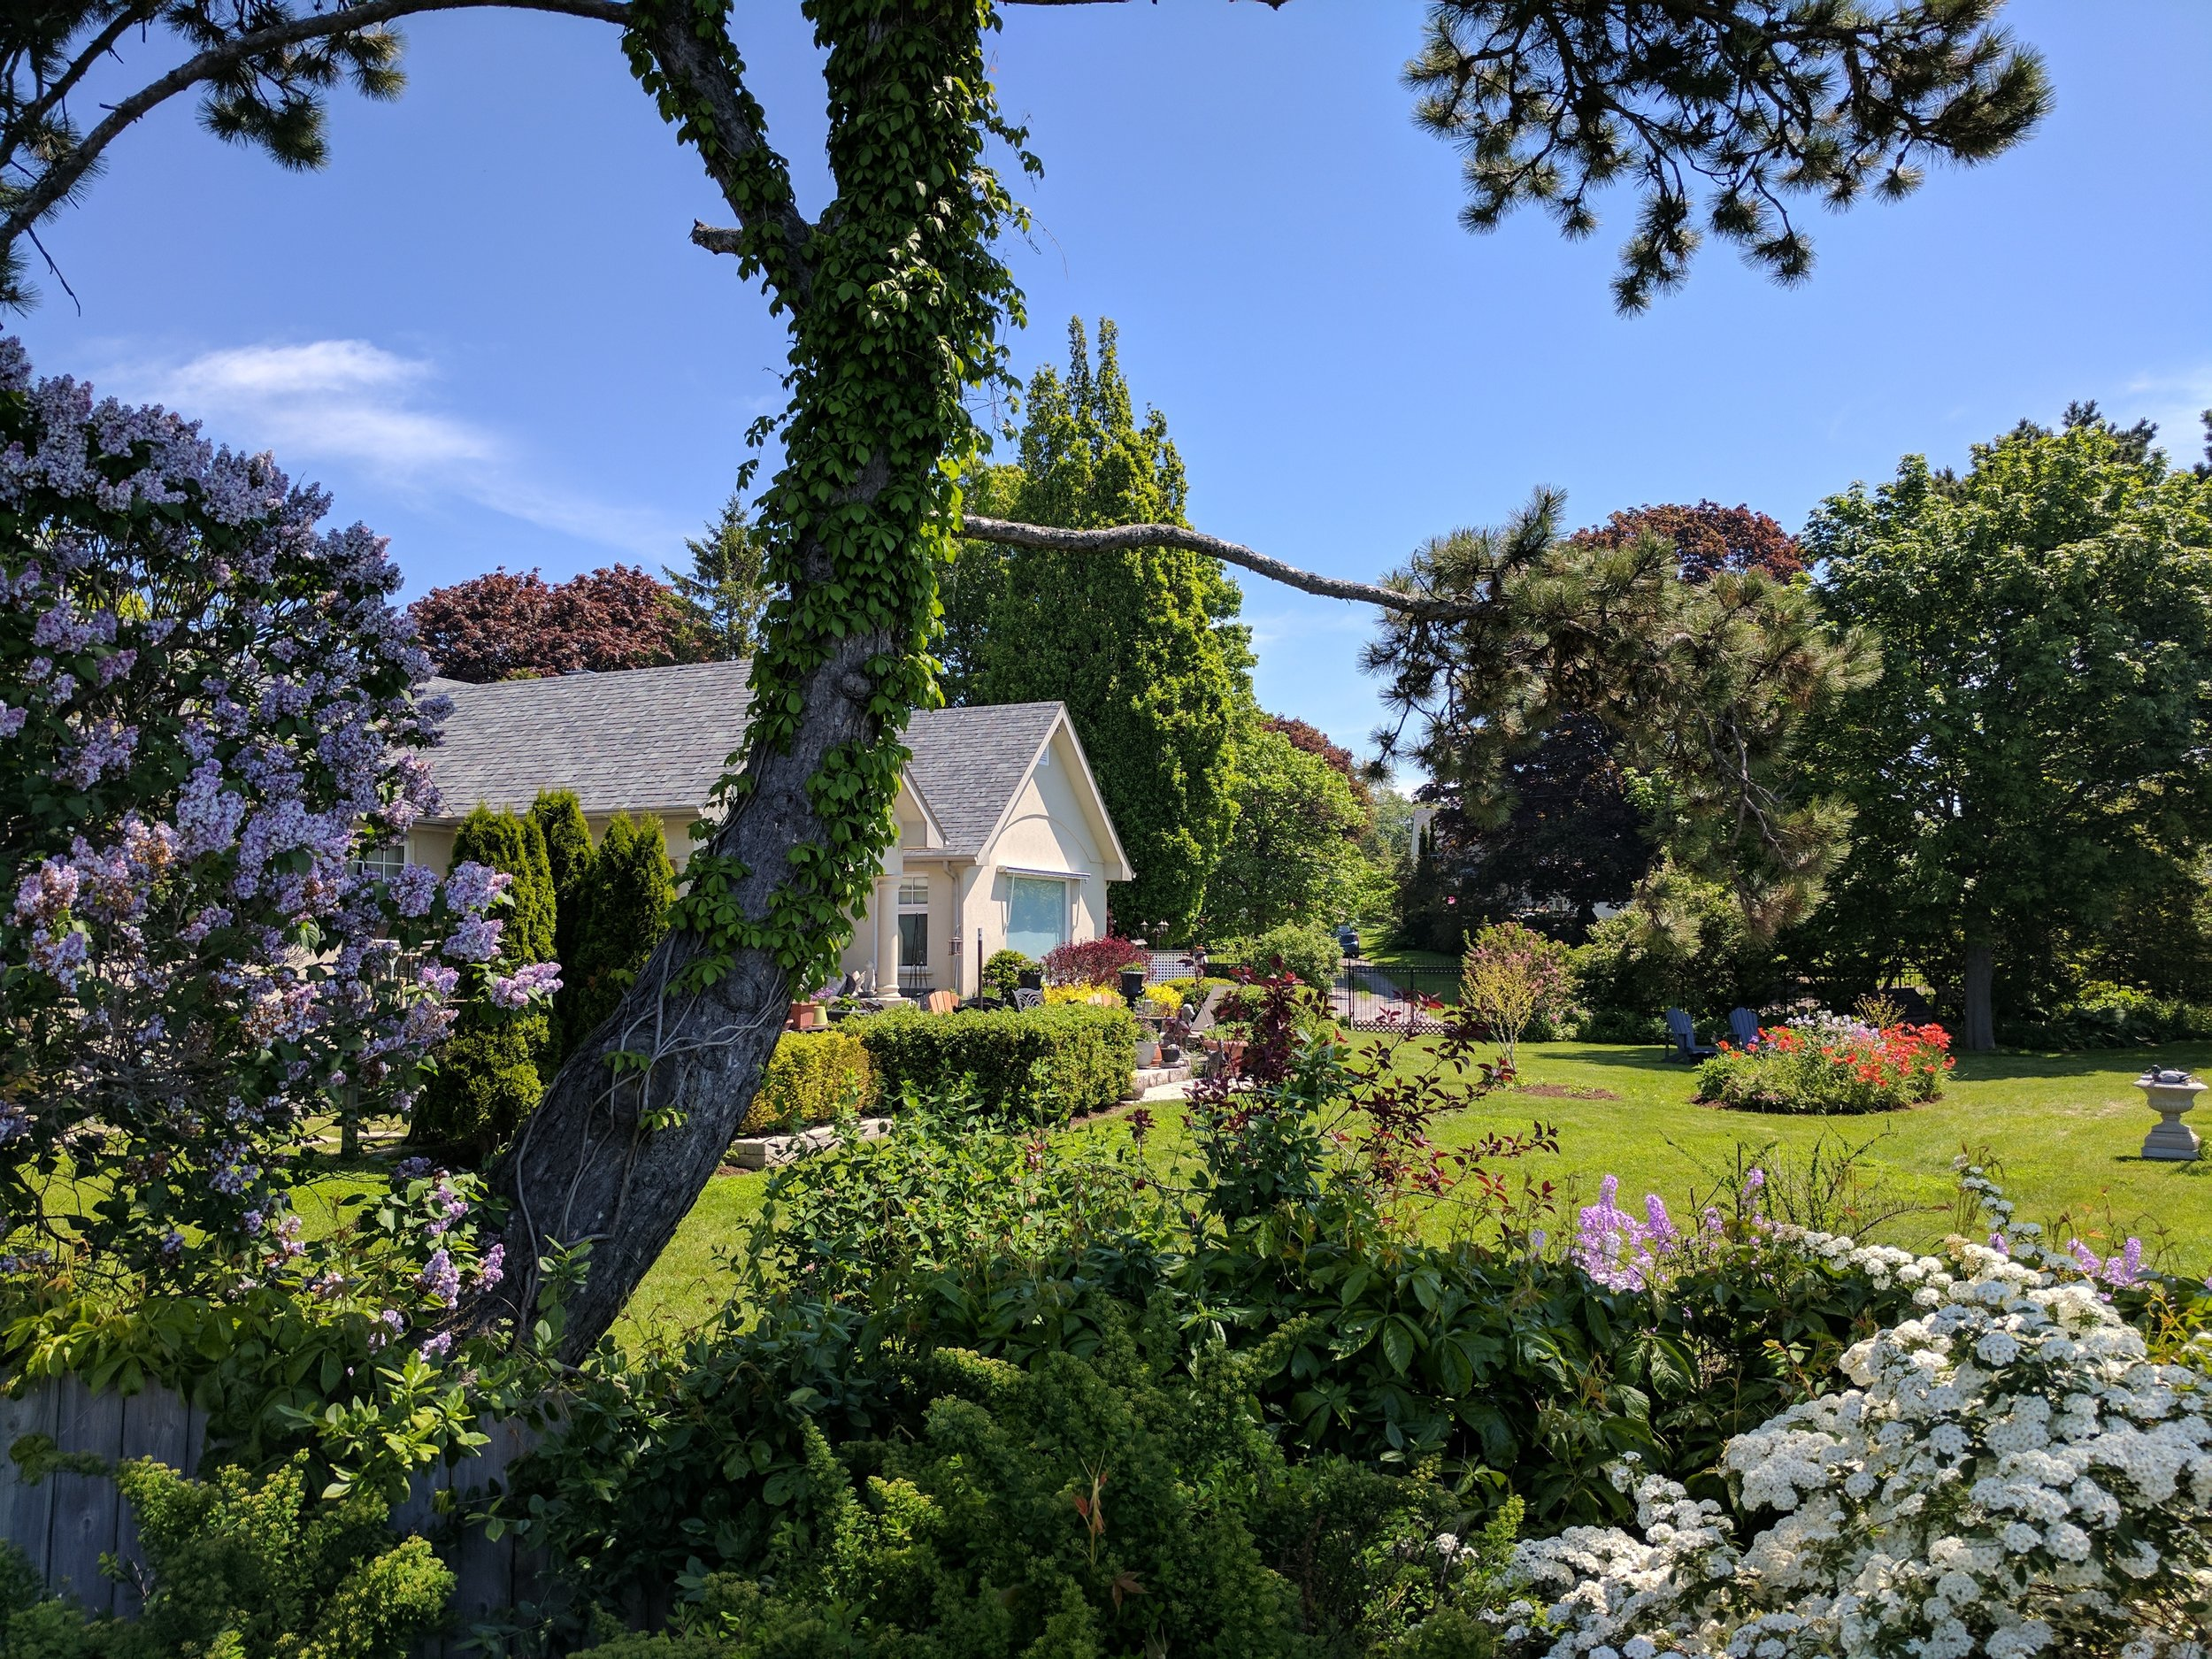 Willowmere - The B& B with a view